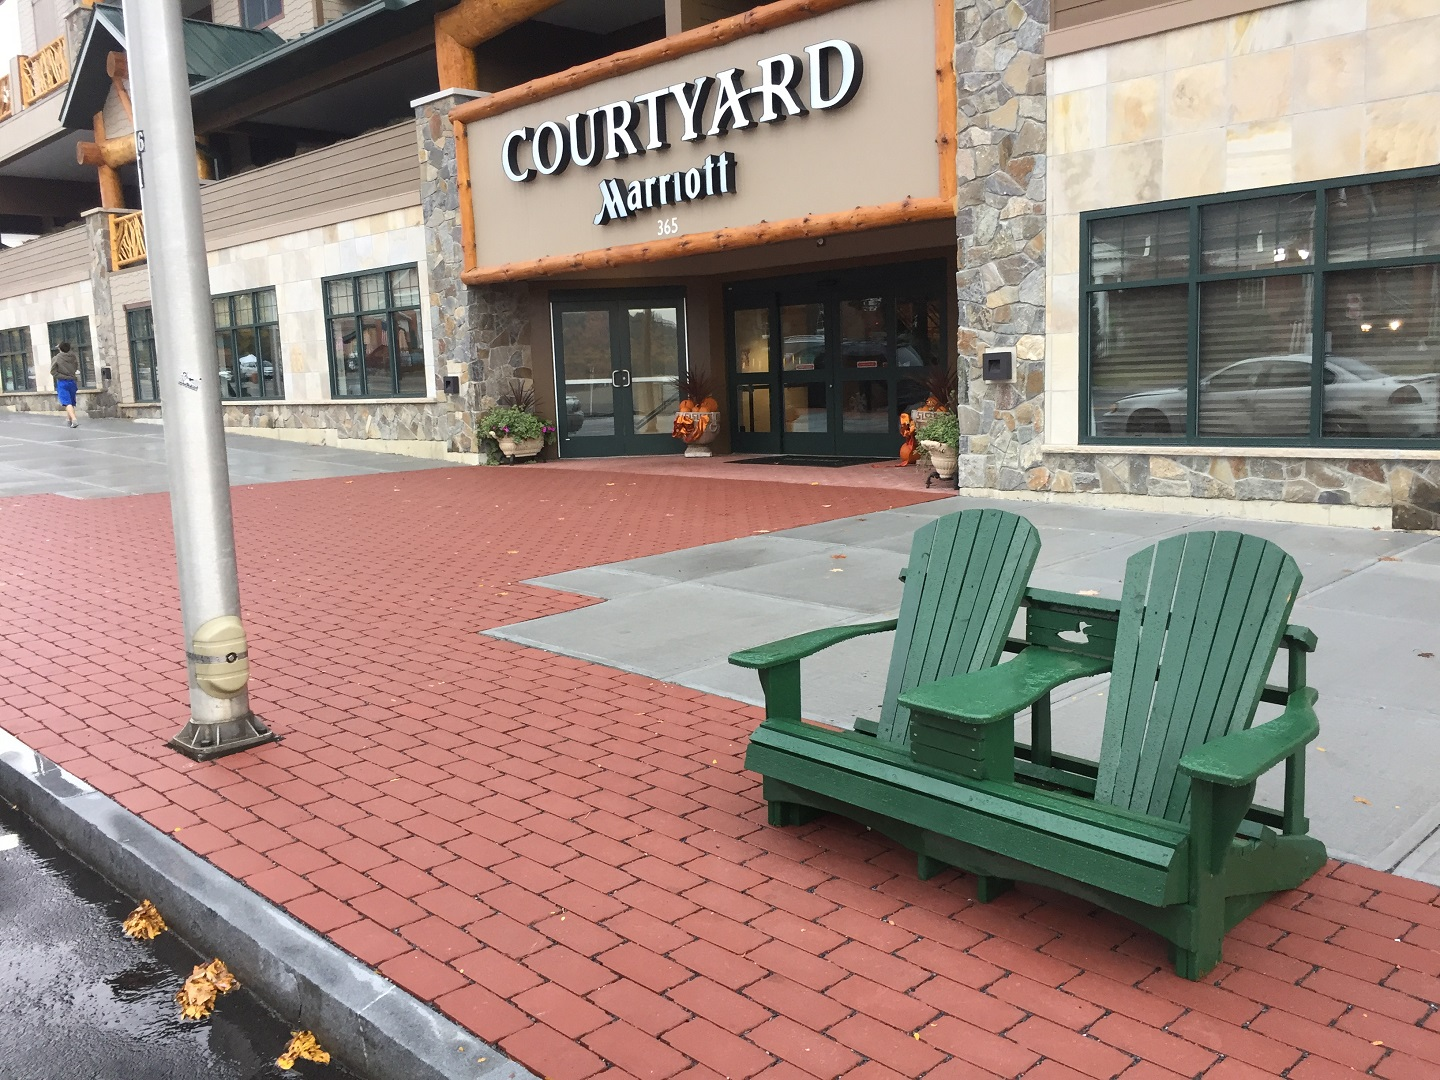 Commercial landscaping in Halfmoon, NY by Sweeney Company LLC